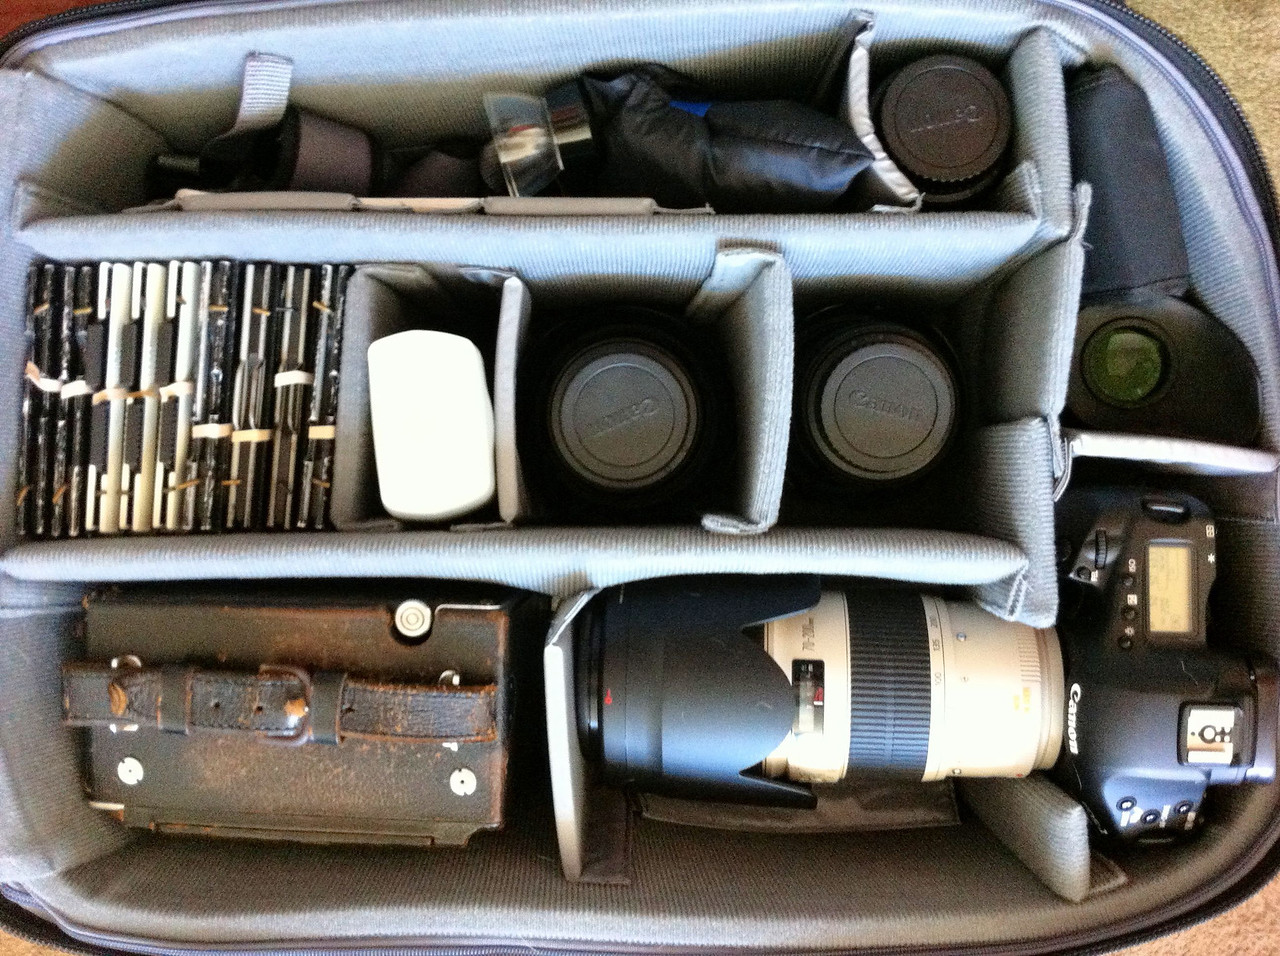 ThinkTankPhoto Airport Security V2 with Canon 1d MK IV, 50mm, 15-35mm, 24-105mm, 70-200mm, 580ex, Graflex speed graphic, 10 film holders, accessories and still have space